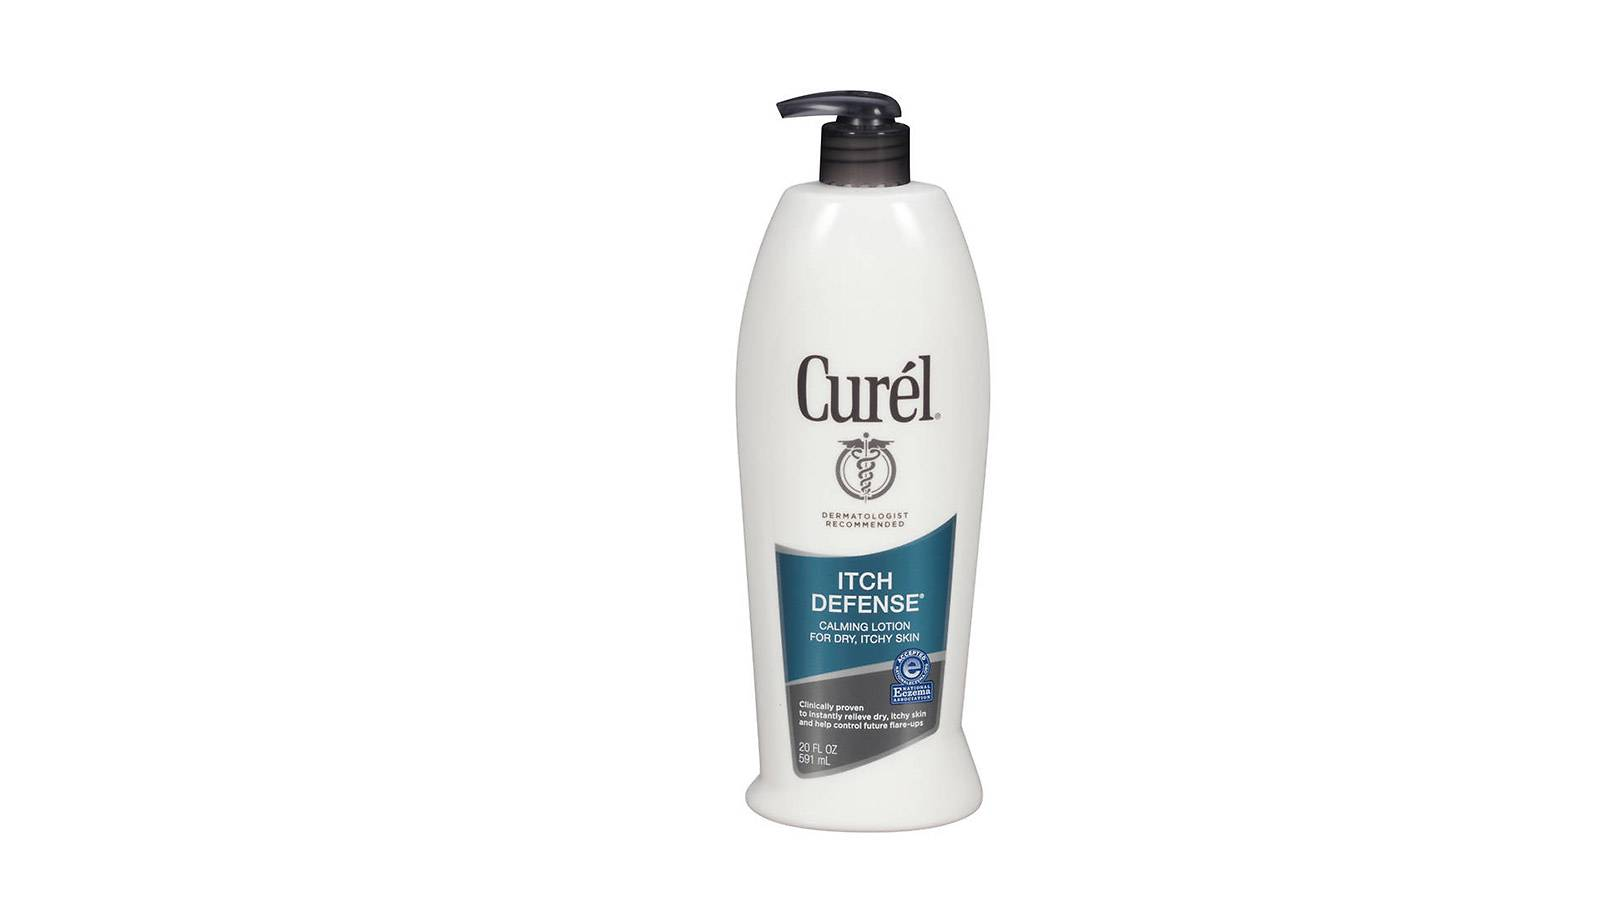 Curél Itch Defense